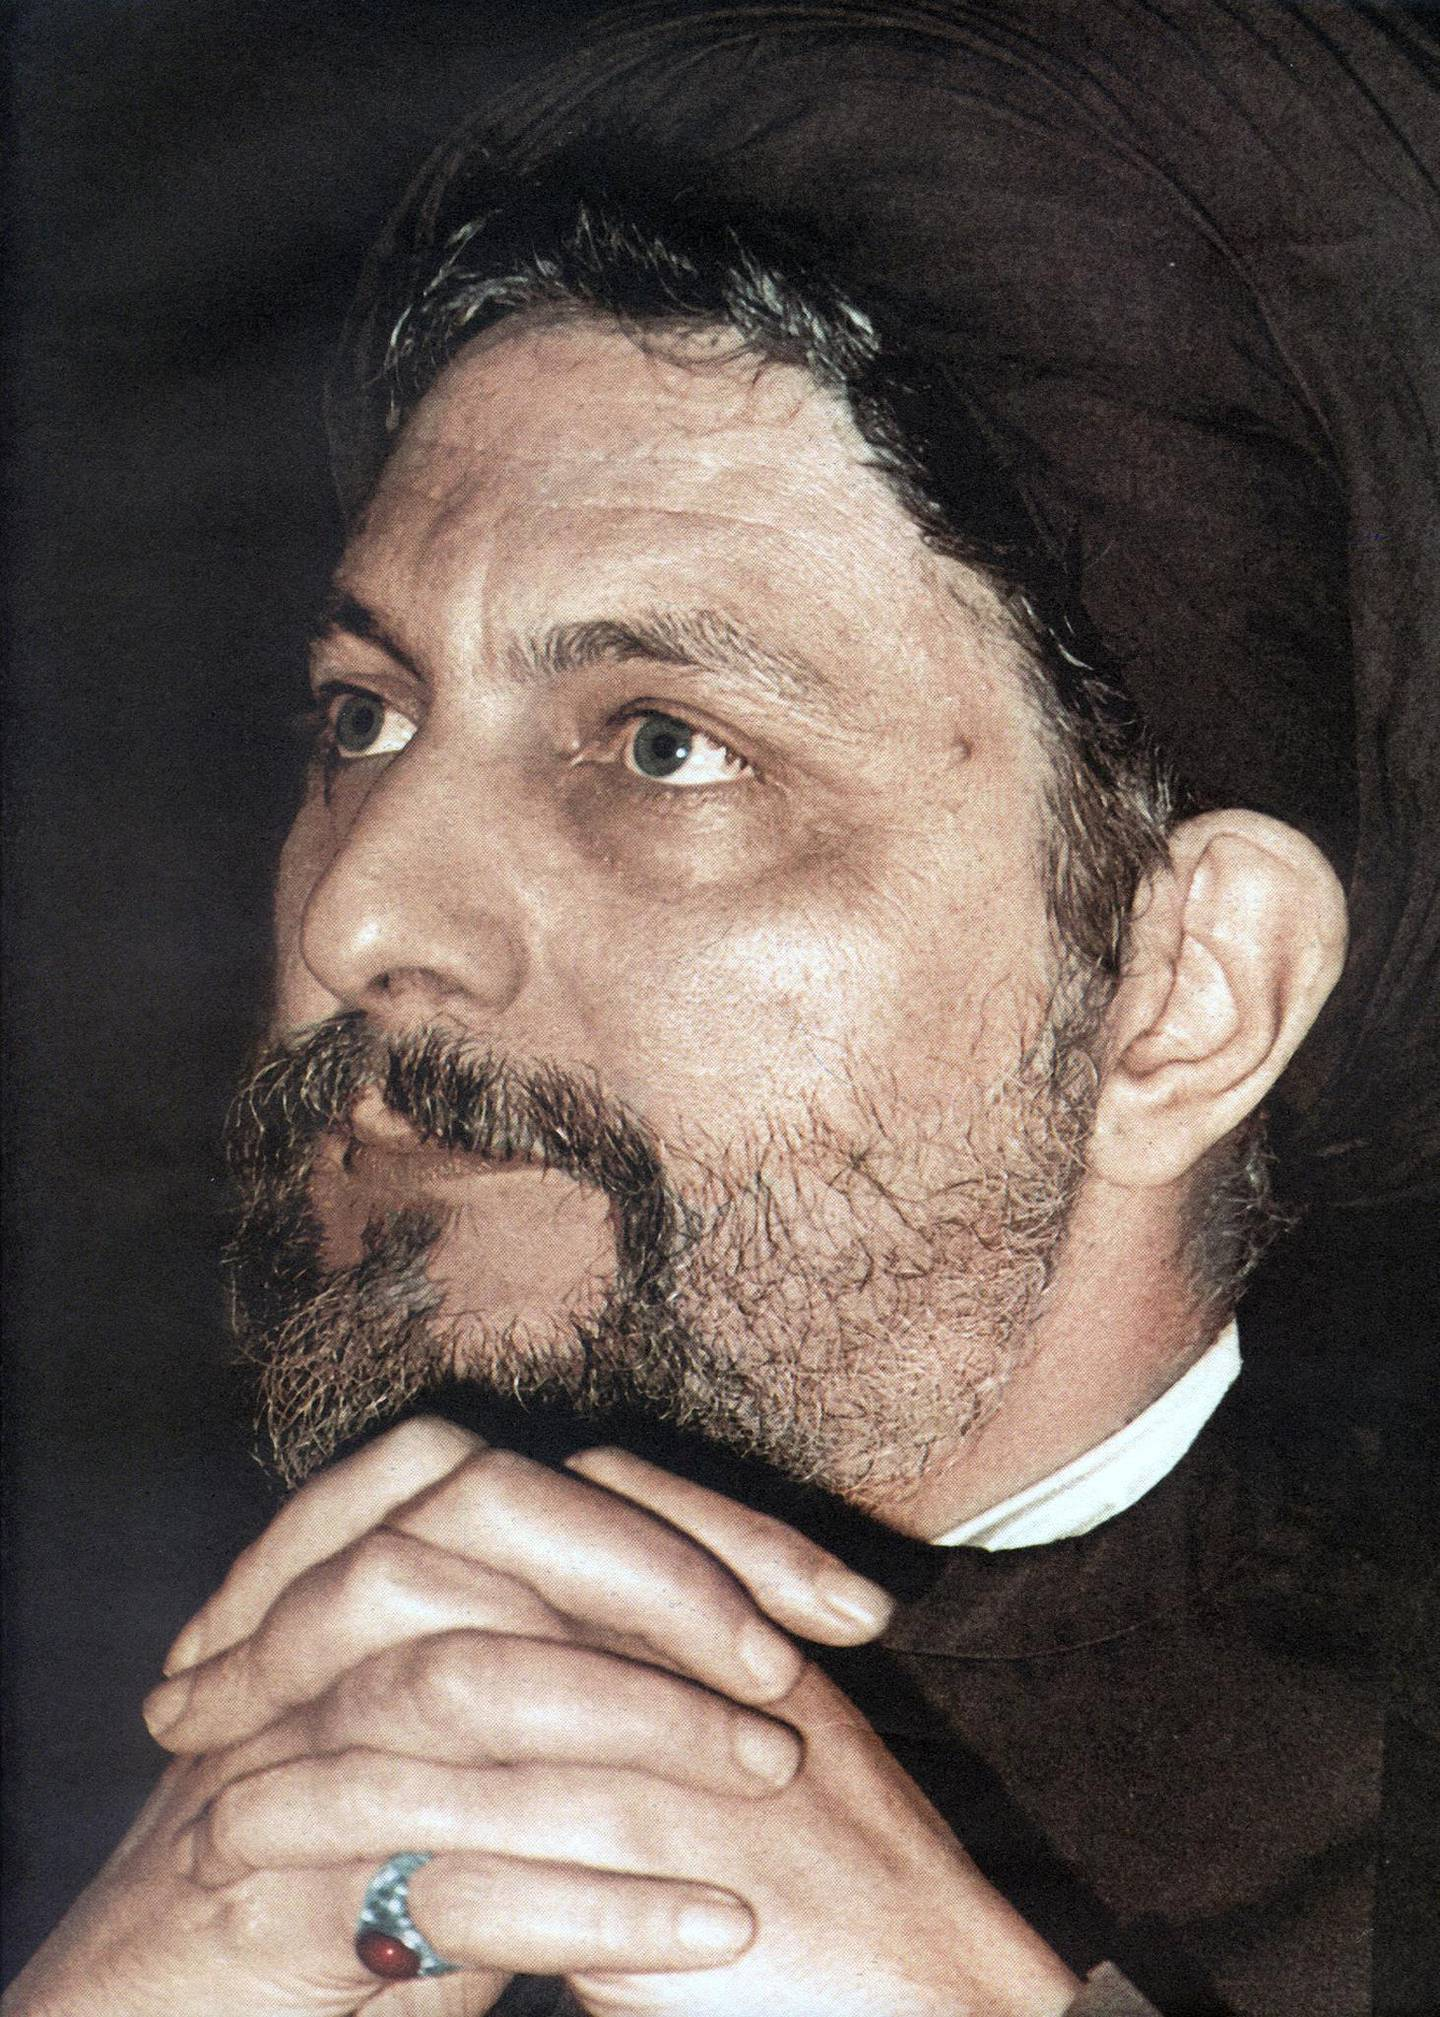 Reproduction of a photo taken in the 1970s shows Lebanese Shiite Muslim religious leader, Imam Mussa al-Sadr, the founder of the Amal movement, which played a major role in Lebanon's civil war between 1975 and 1990. Sadr, who was the head of the Higher Shiite Council in Lebanon, vanished while on a trip to Libya in 1978. Libya severed diplomatic relations with Lebanon 03 September 2003 following accusations that Libyan leader Moamer Kadhafi helped cover up the disappearance of the prominent cleric, official sources in Beirut said. Officials at the Libyan embassy were not available for comment. AFP PHOTO/HO / AFP PHOTO